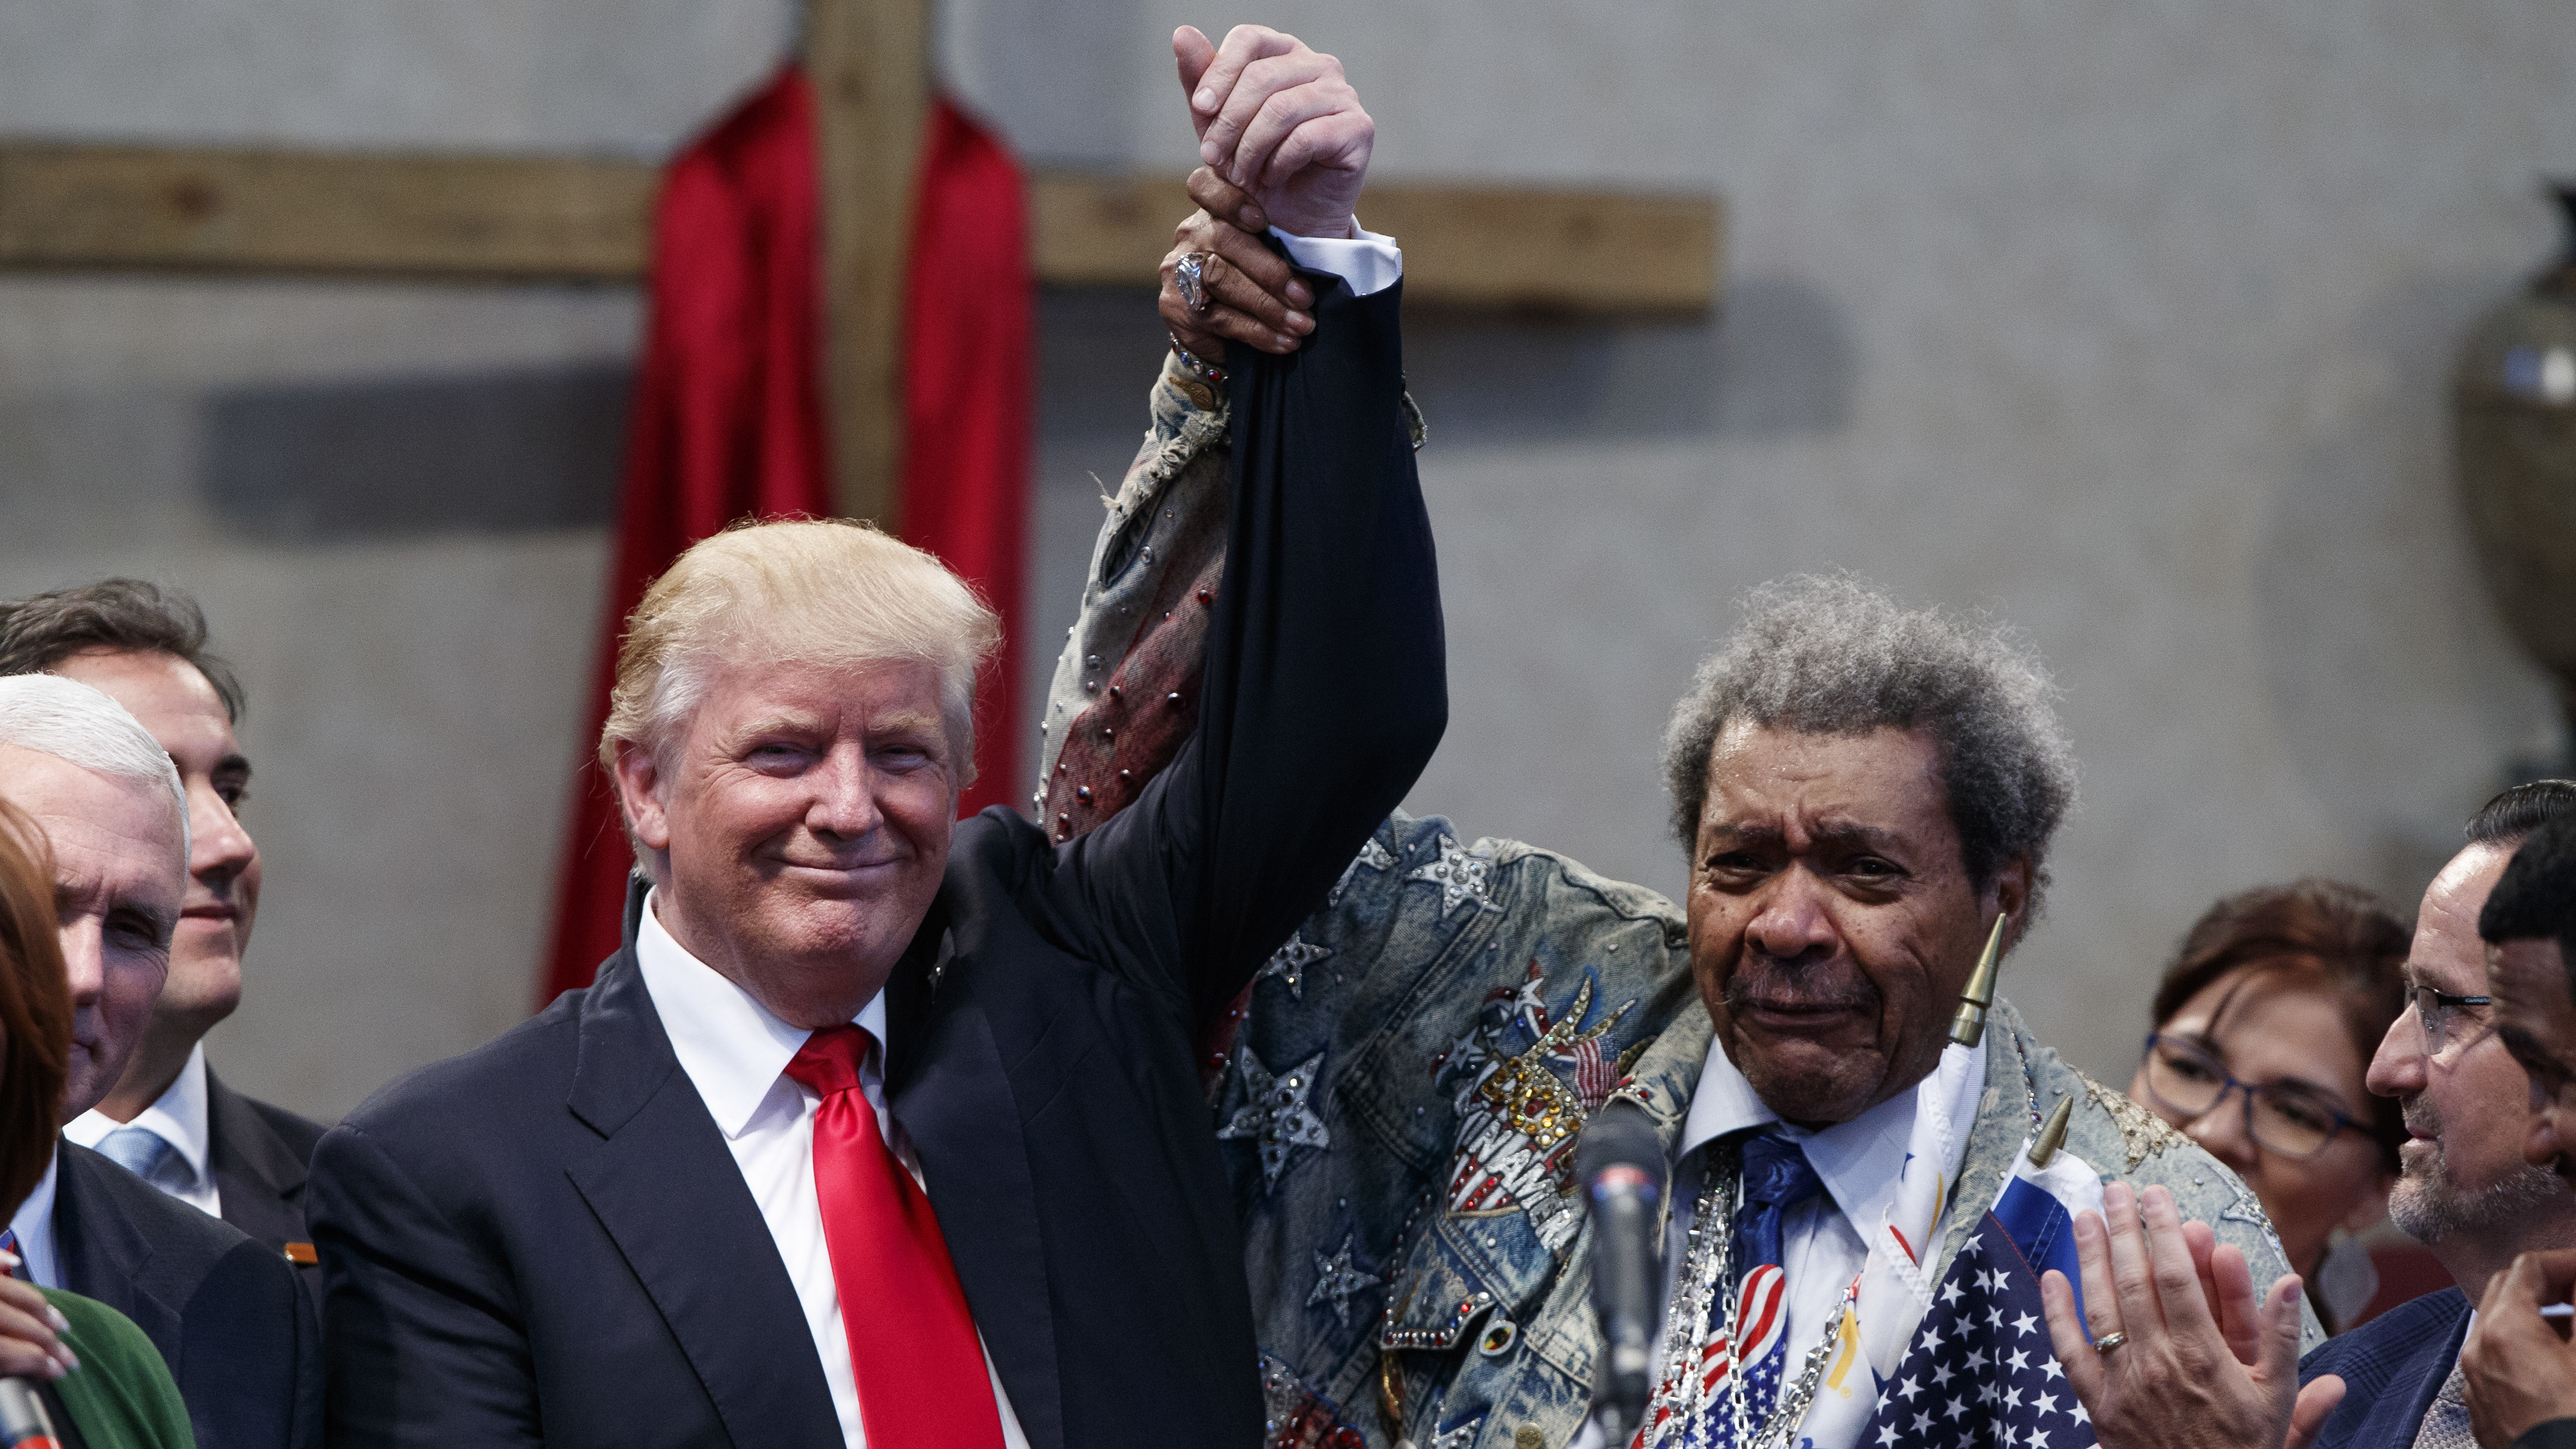 Donald Trump campaigned alongside boxing promoter Don King in Ohio Wednesday. (Photo by Evan Vucci/Associated Press)